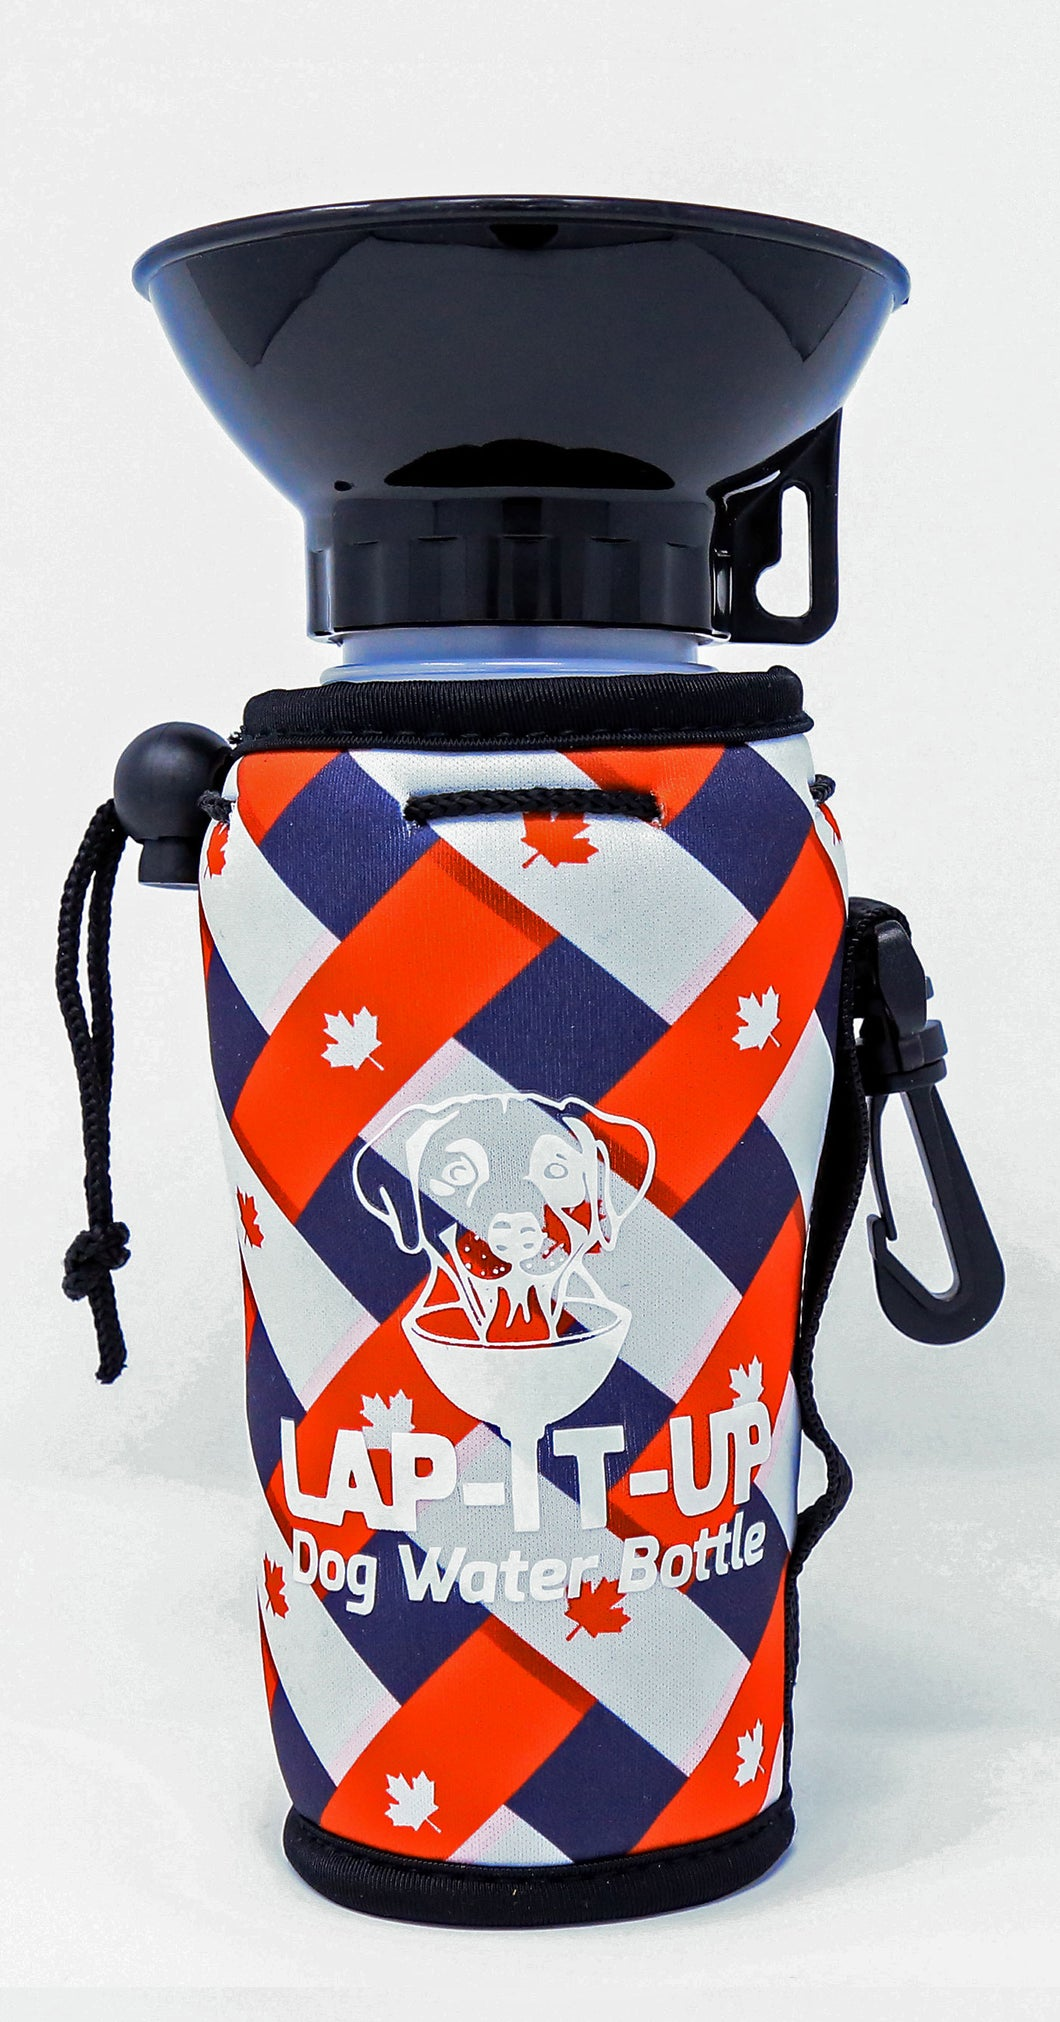 Lap-It-Up Dog Water Bottle - Canada